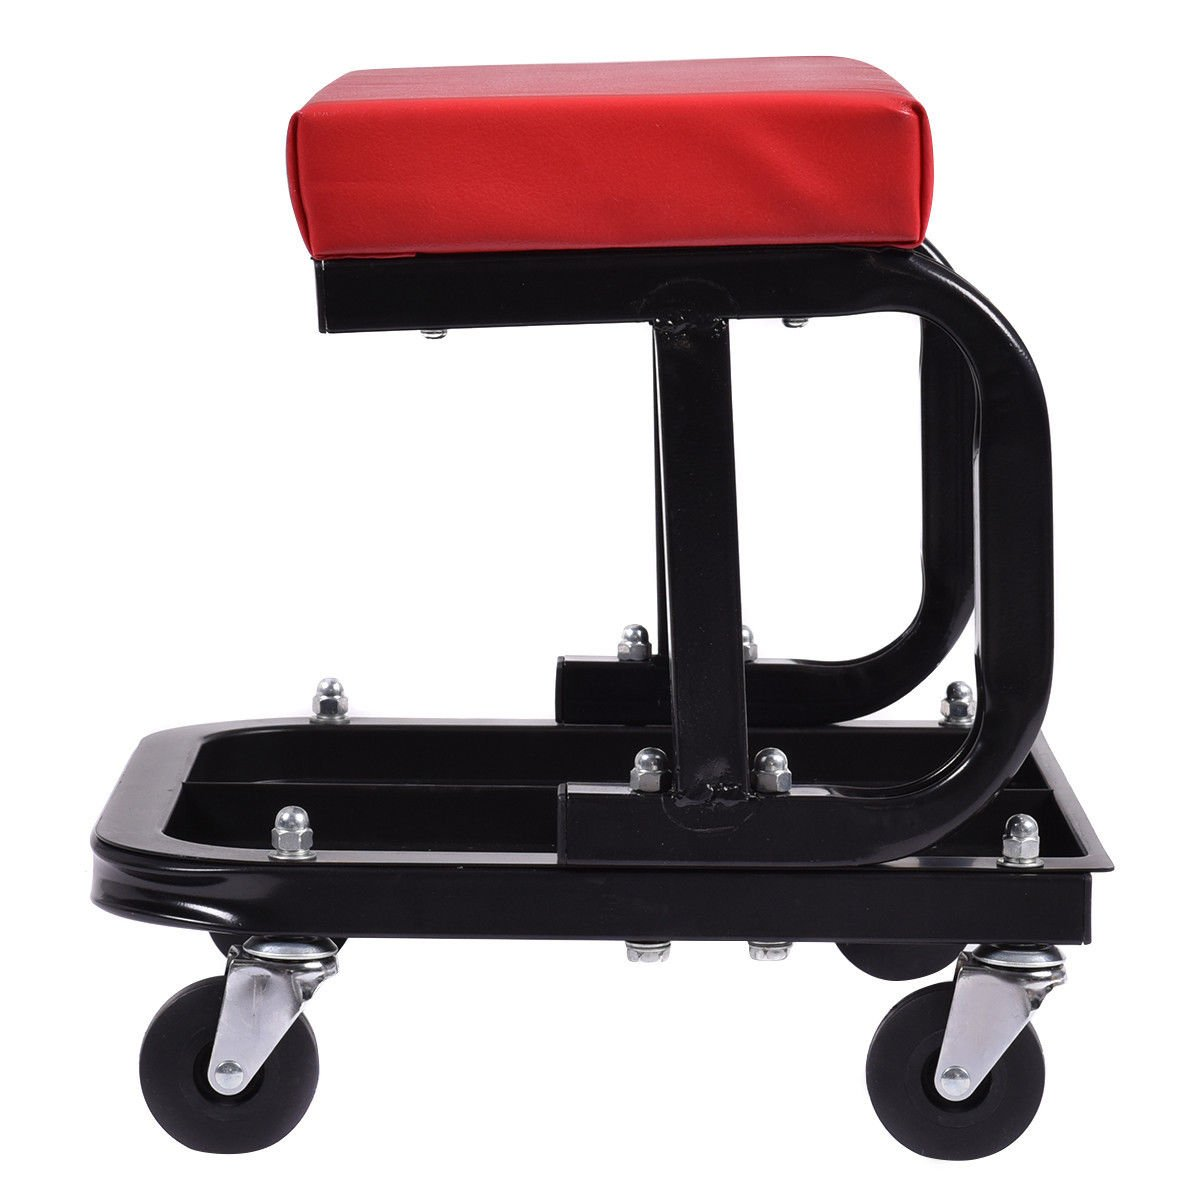 Rectangular Shape Goplus Rolling Mechanic Seat Adjustable Rolling Seat Creeper Pneumatic Padded Chair with Tray for Repair Shop Garage